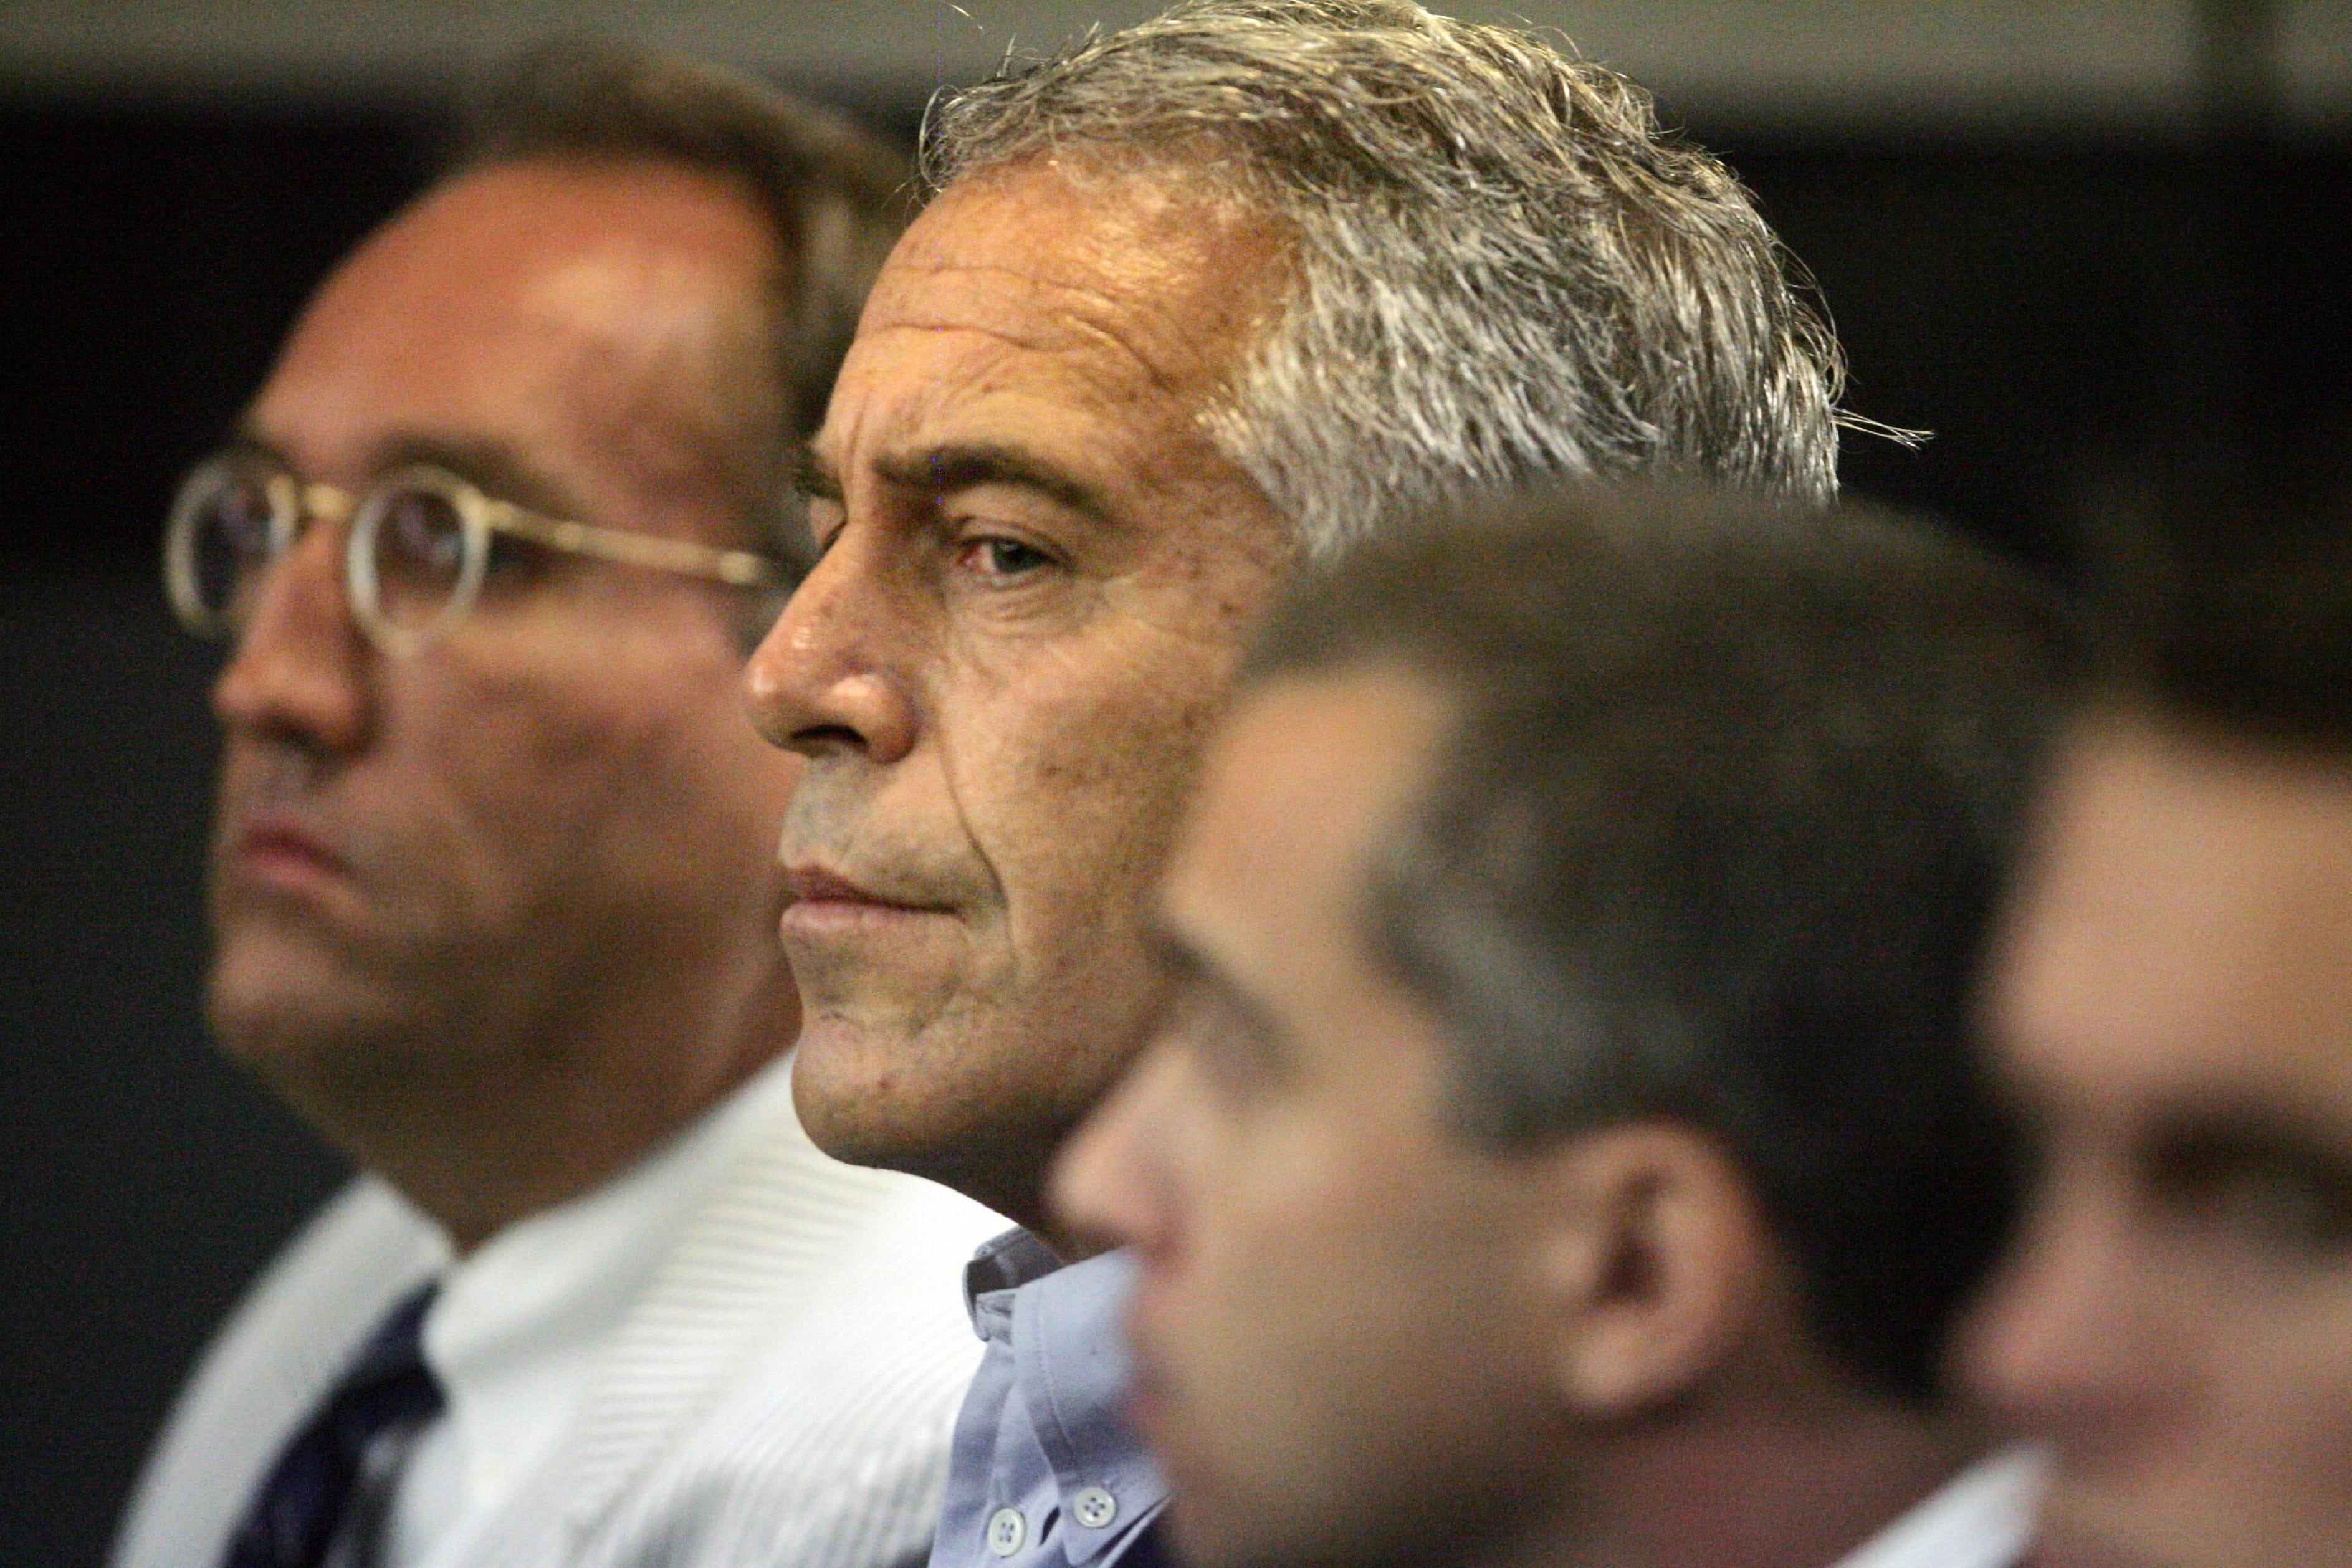 Jeffrey Epstein signed a will just two days before he died by suicide, court records say